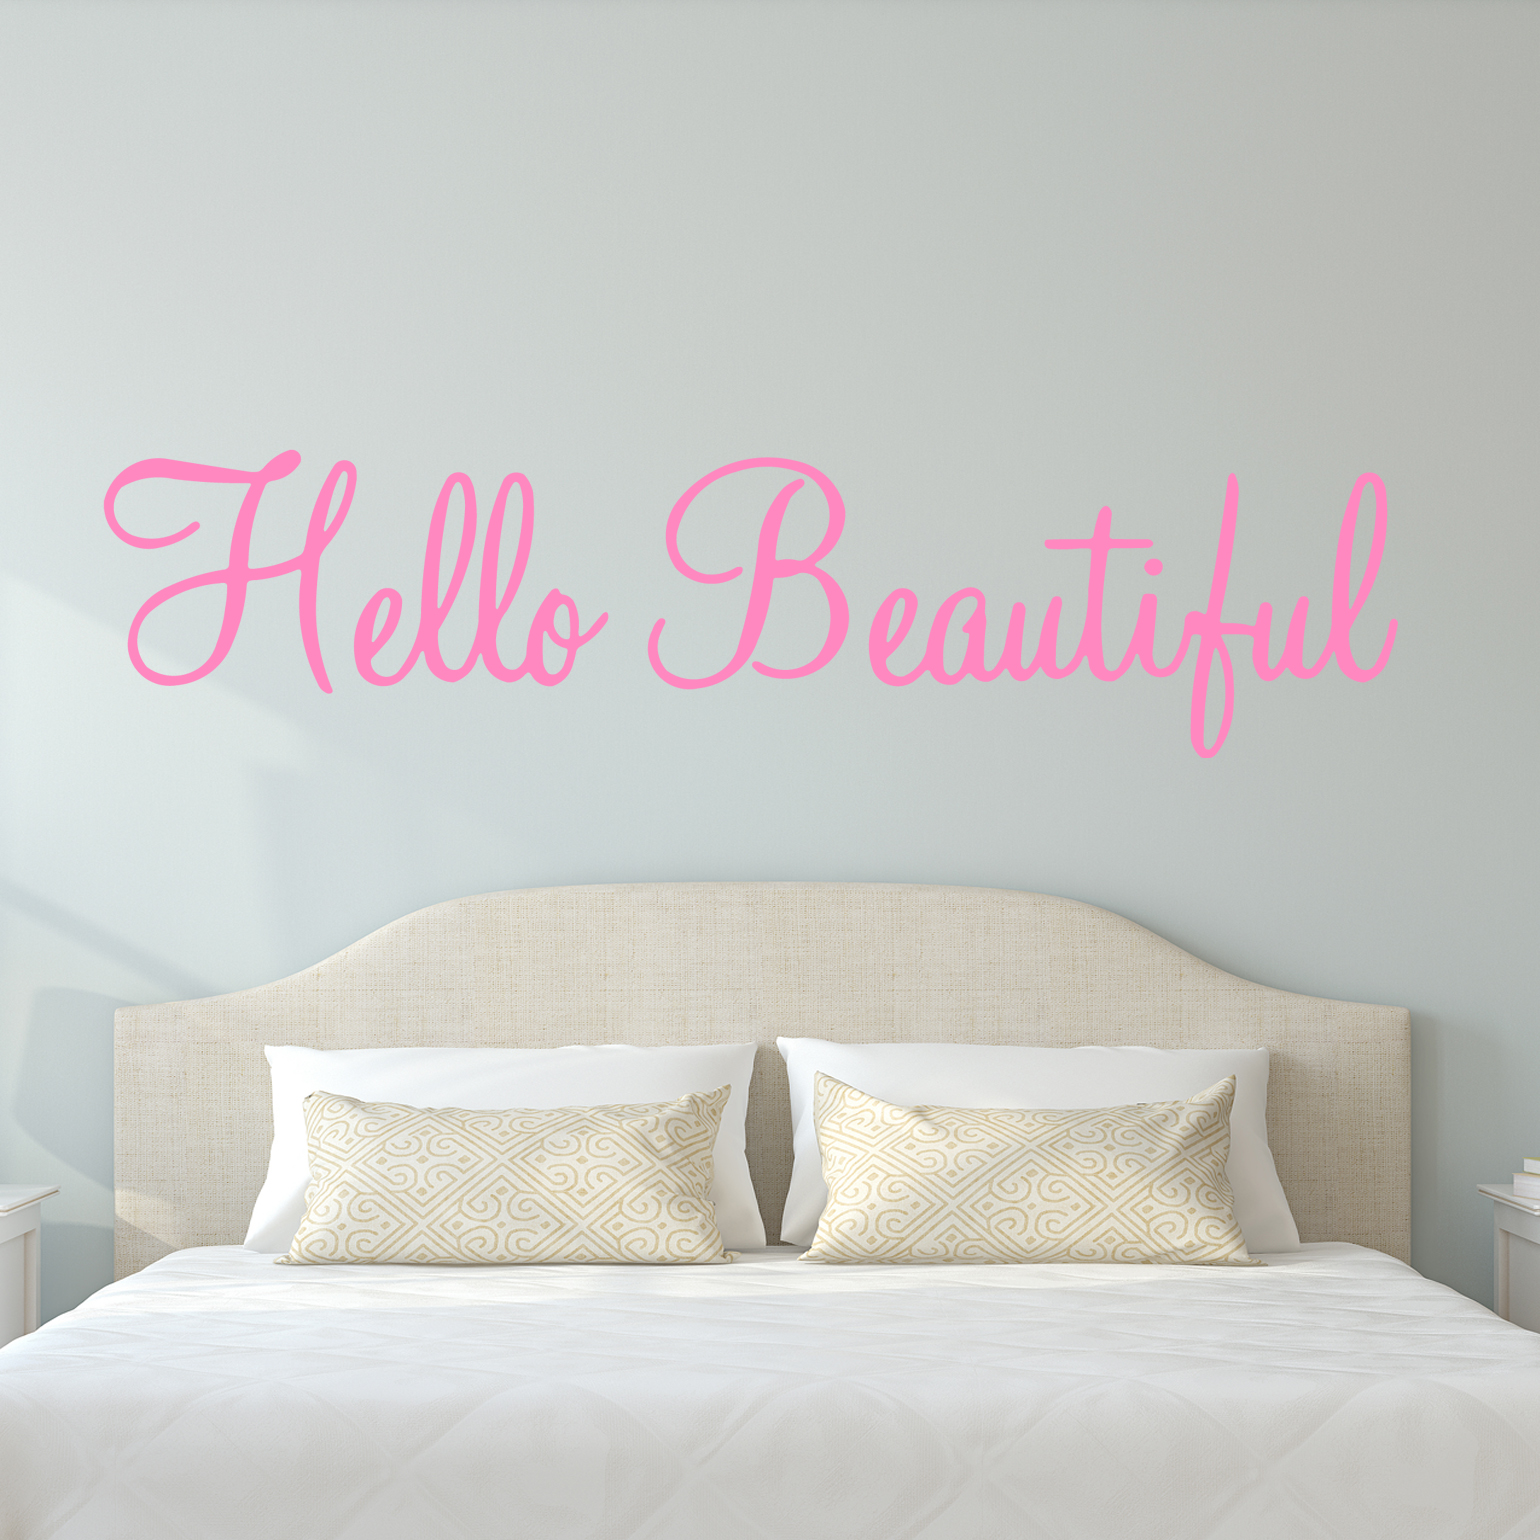 "VWAQ Hello Beautiful Wall Decal Inspirational Quotes Beauty Mirror Stickers #2 Version VWAQ-1656 (22""W X 6""H, Gold)"